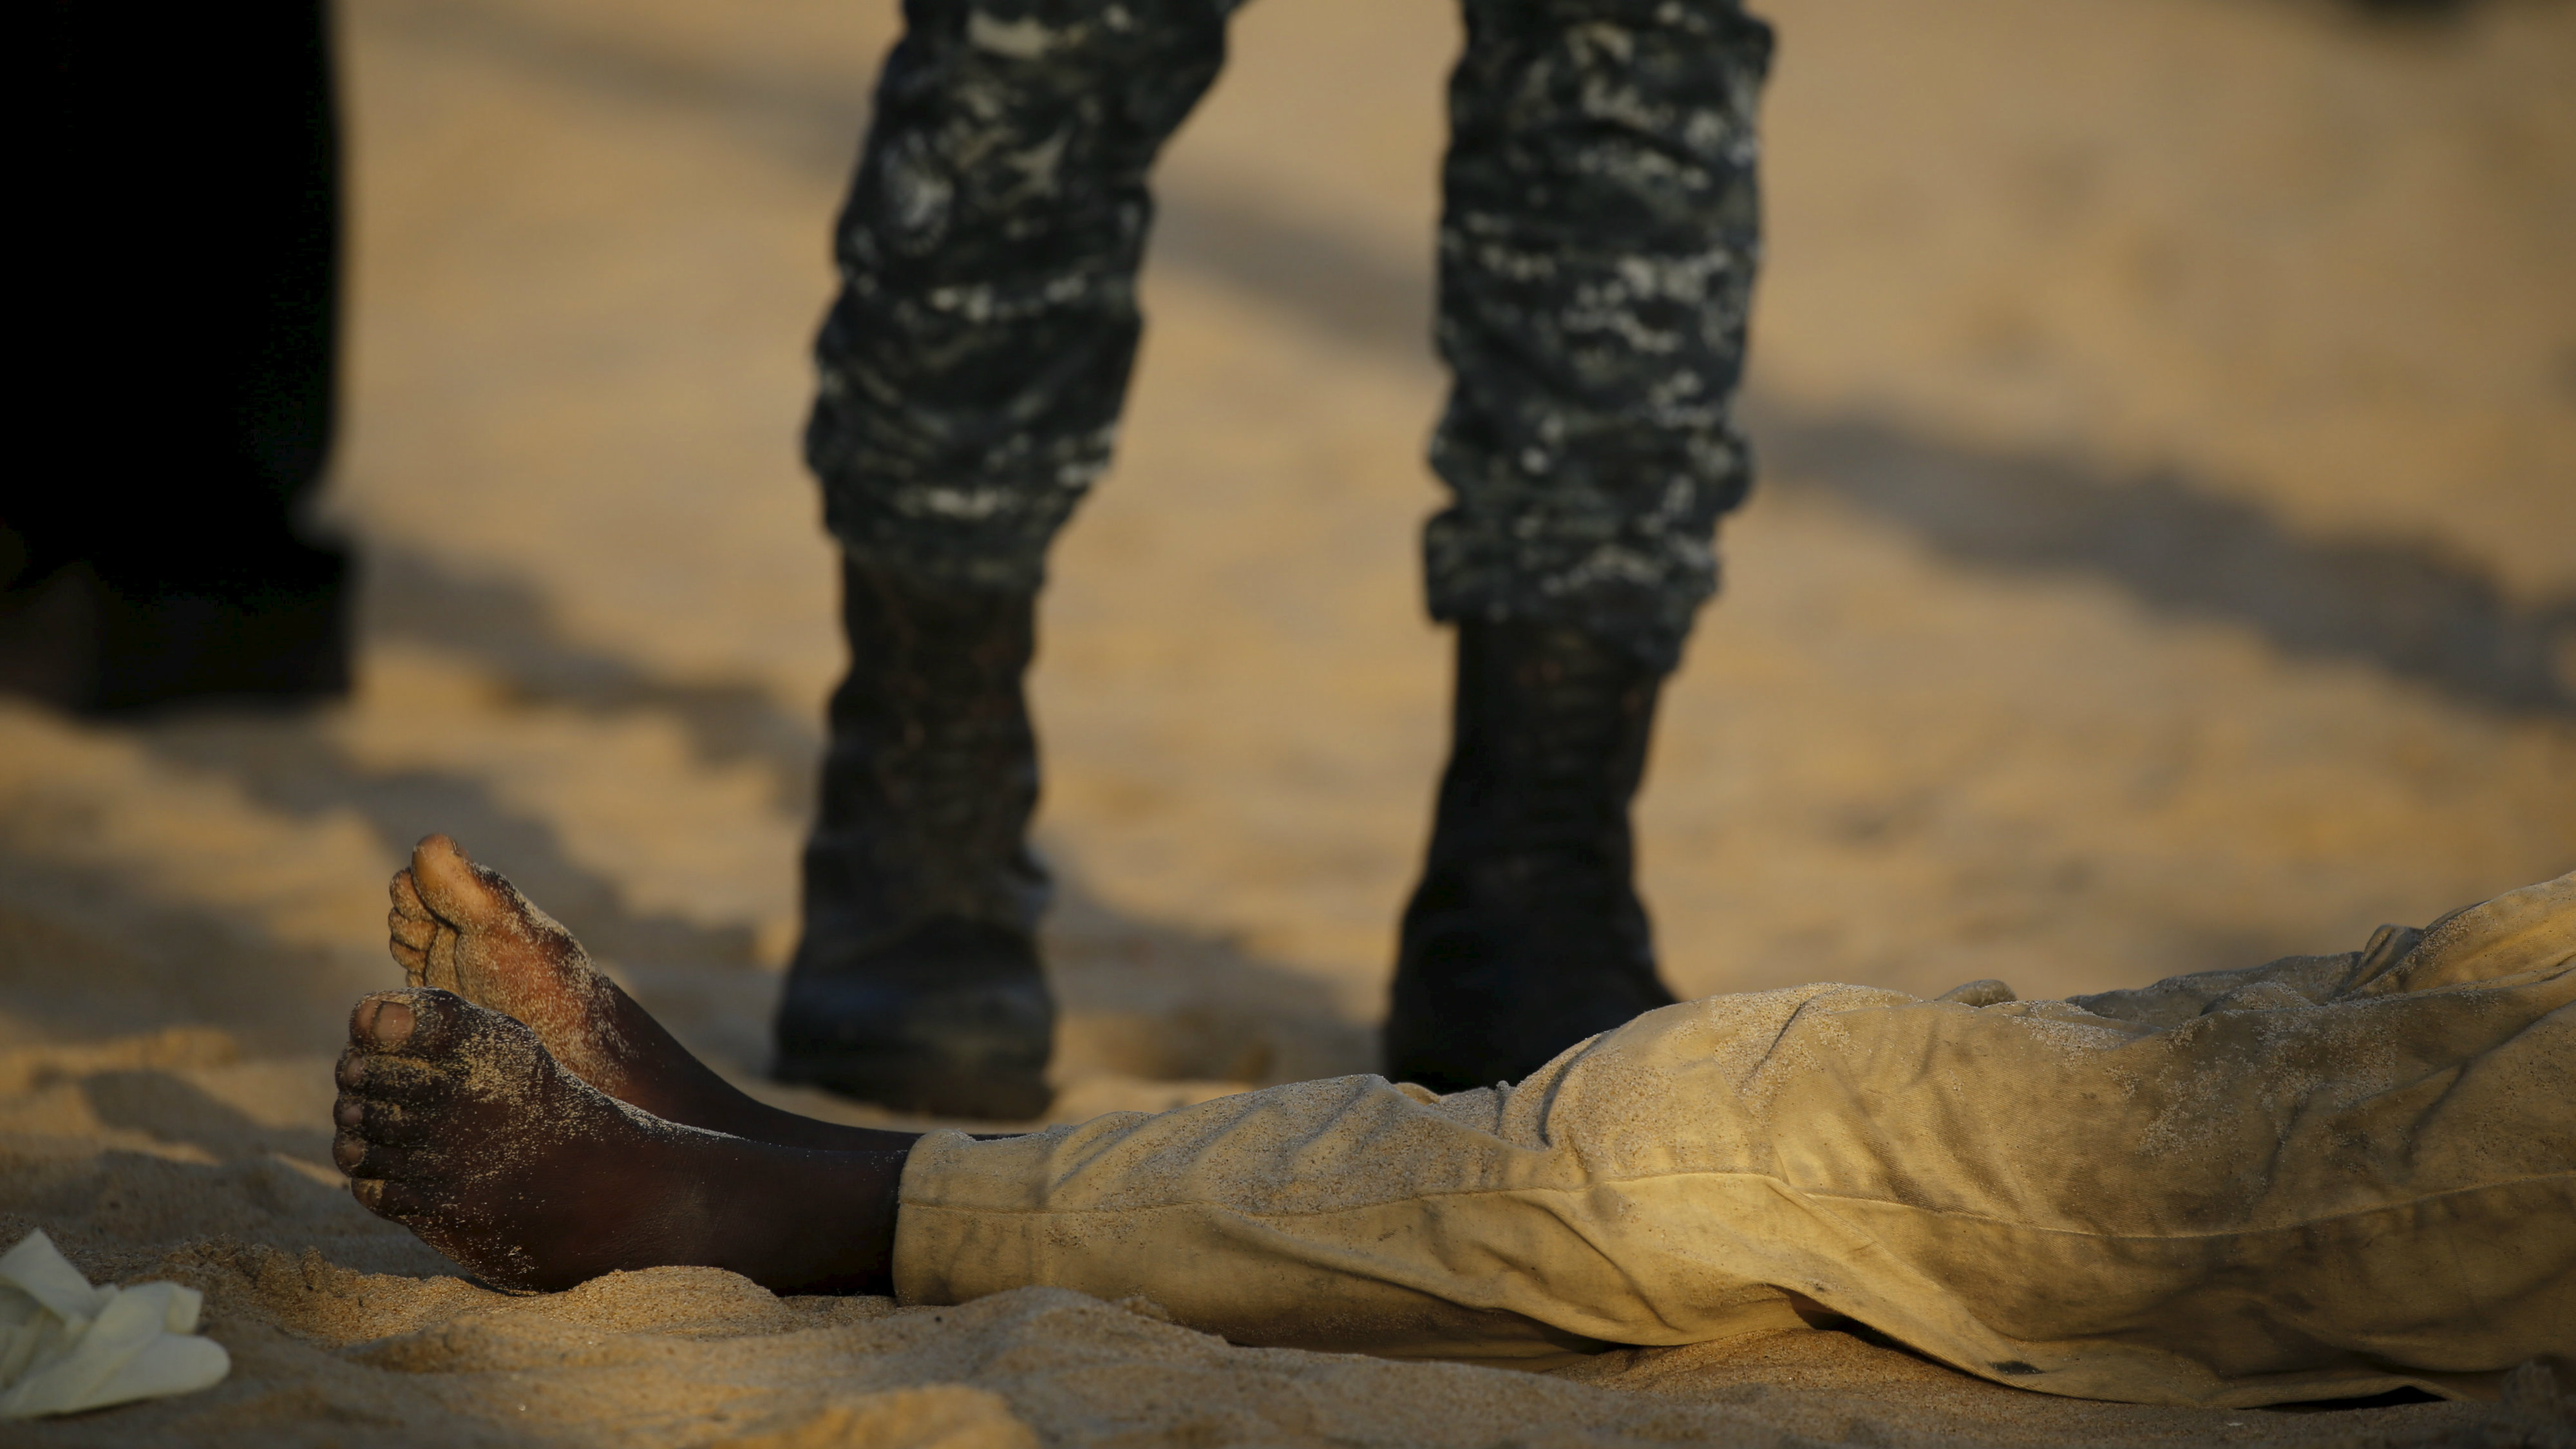 A soldier stands over a person killed on a beach after an attack in Grand Bassam, Ivory Coast, March 13, 2016.